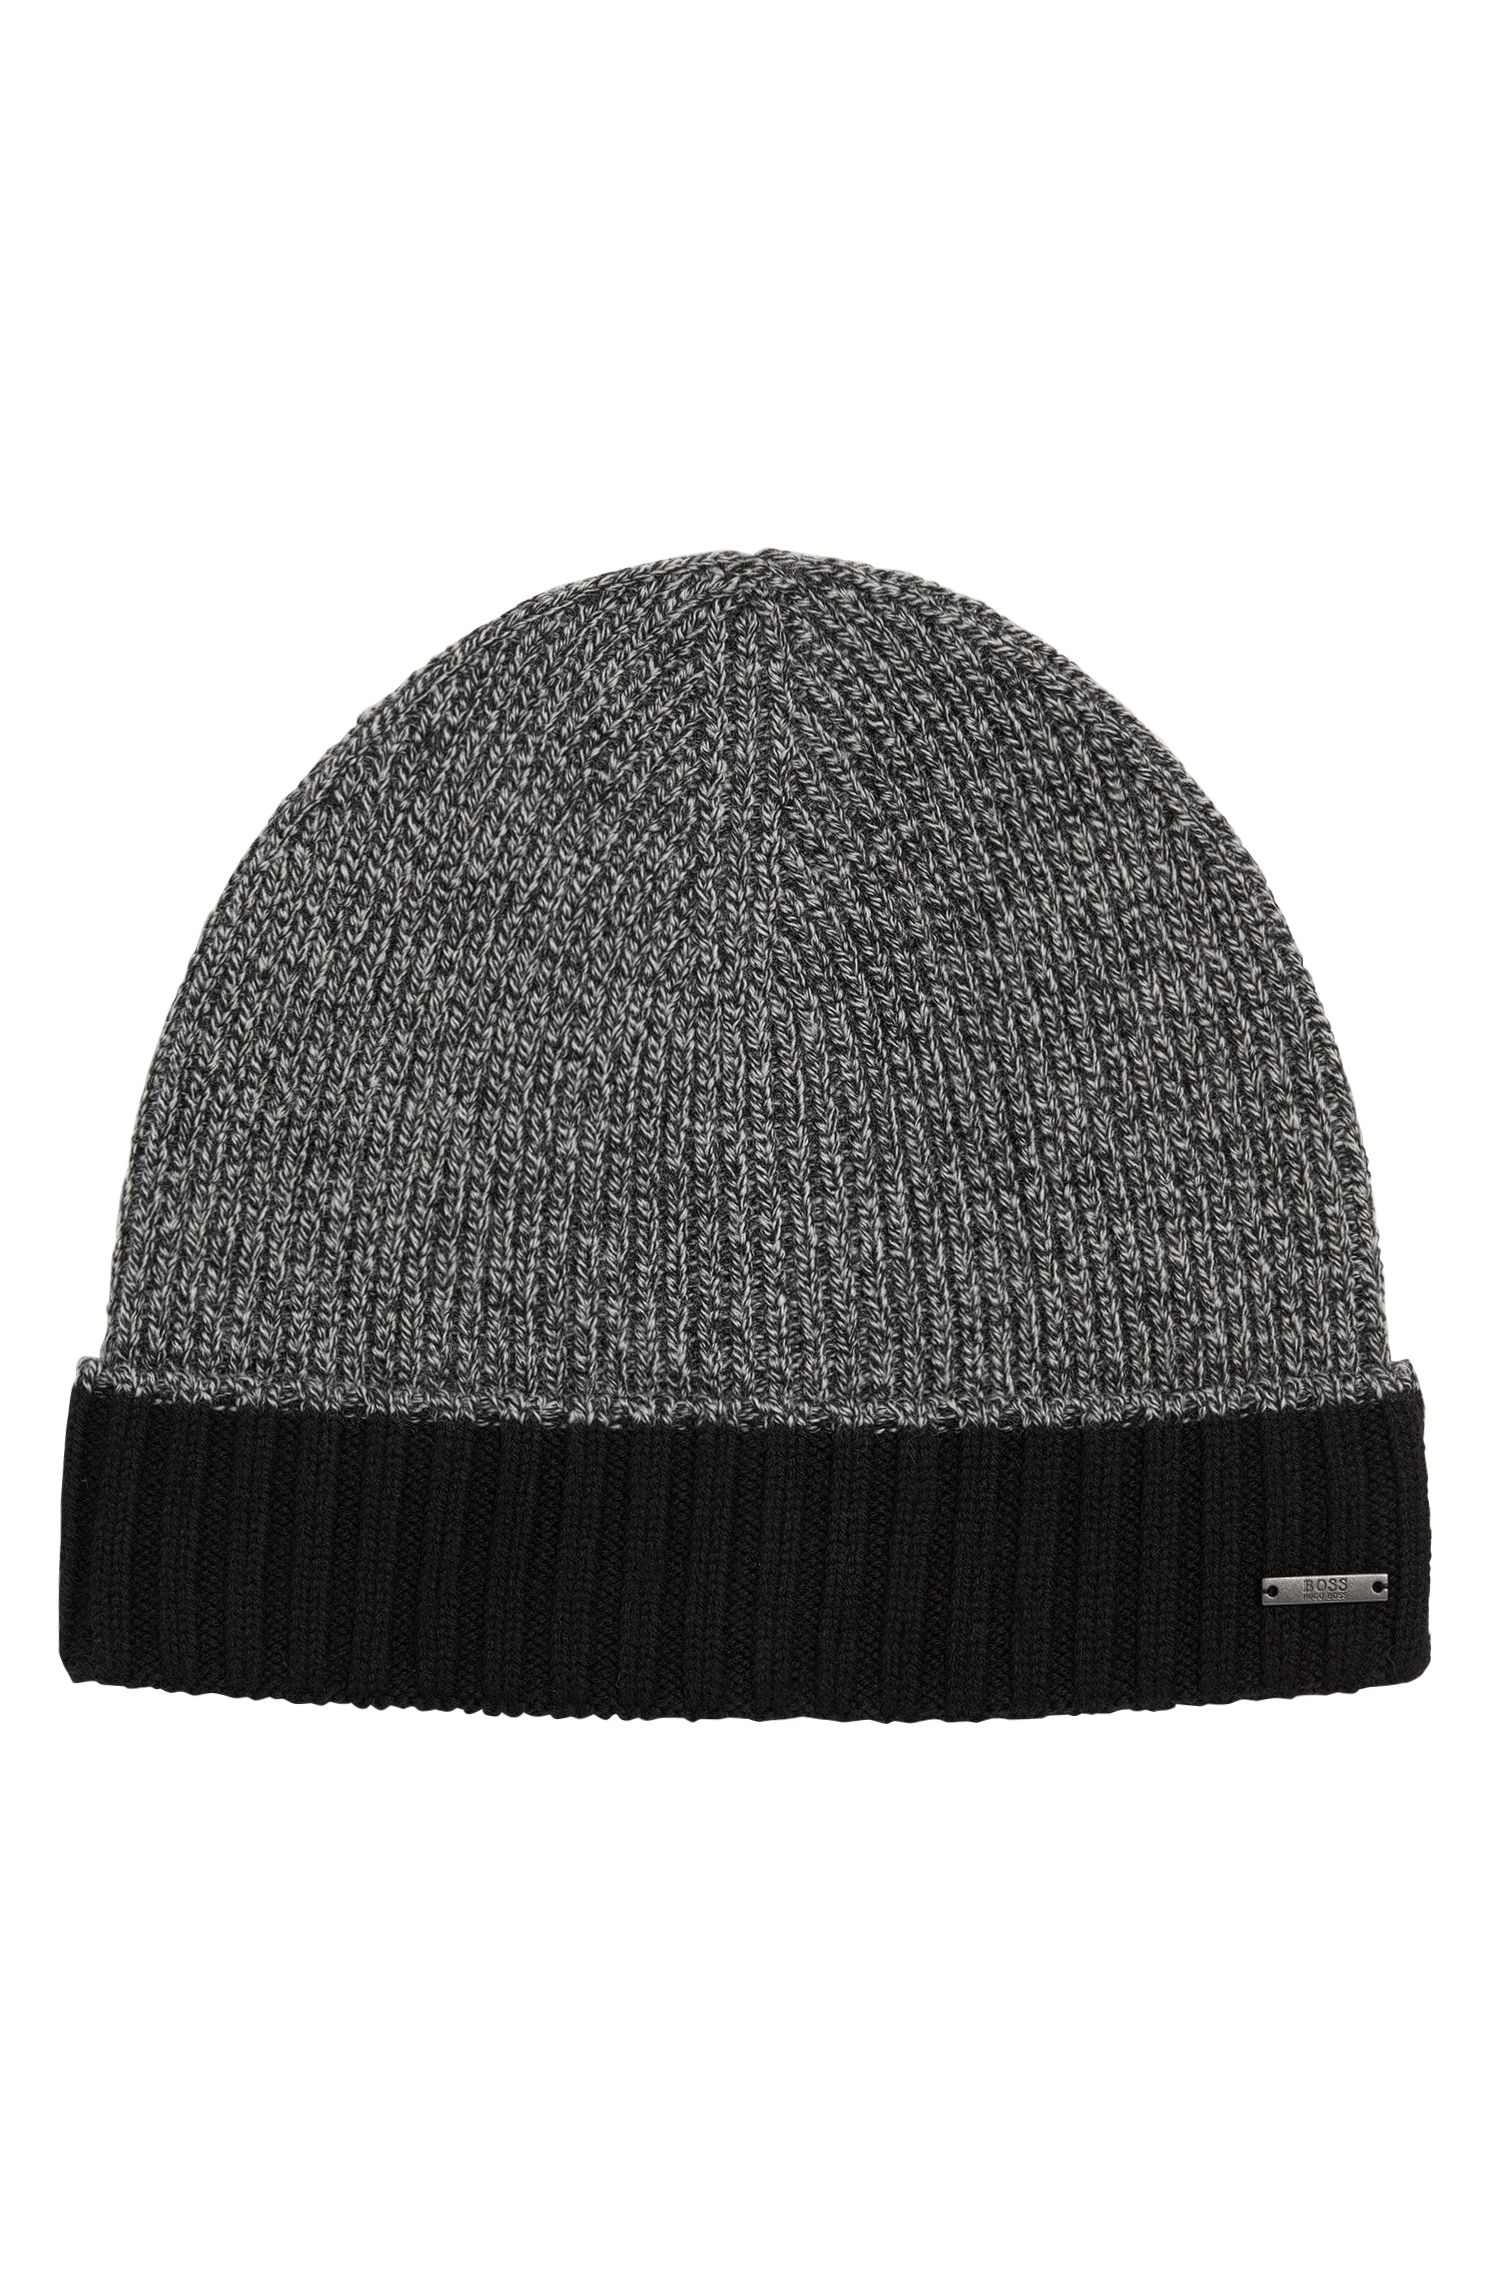 'Frisk' | Virgin Wool Knit Beanie Hat